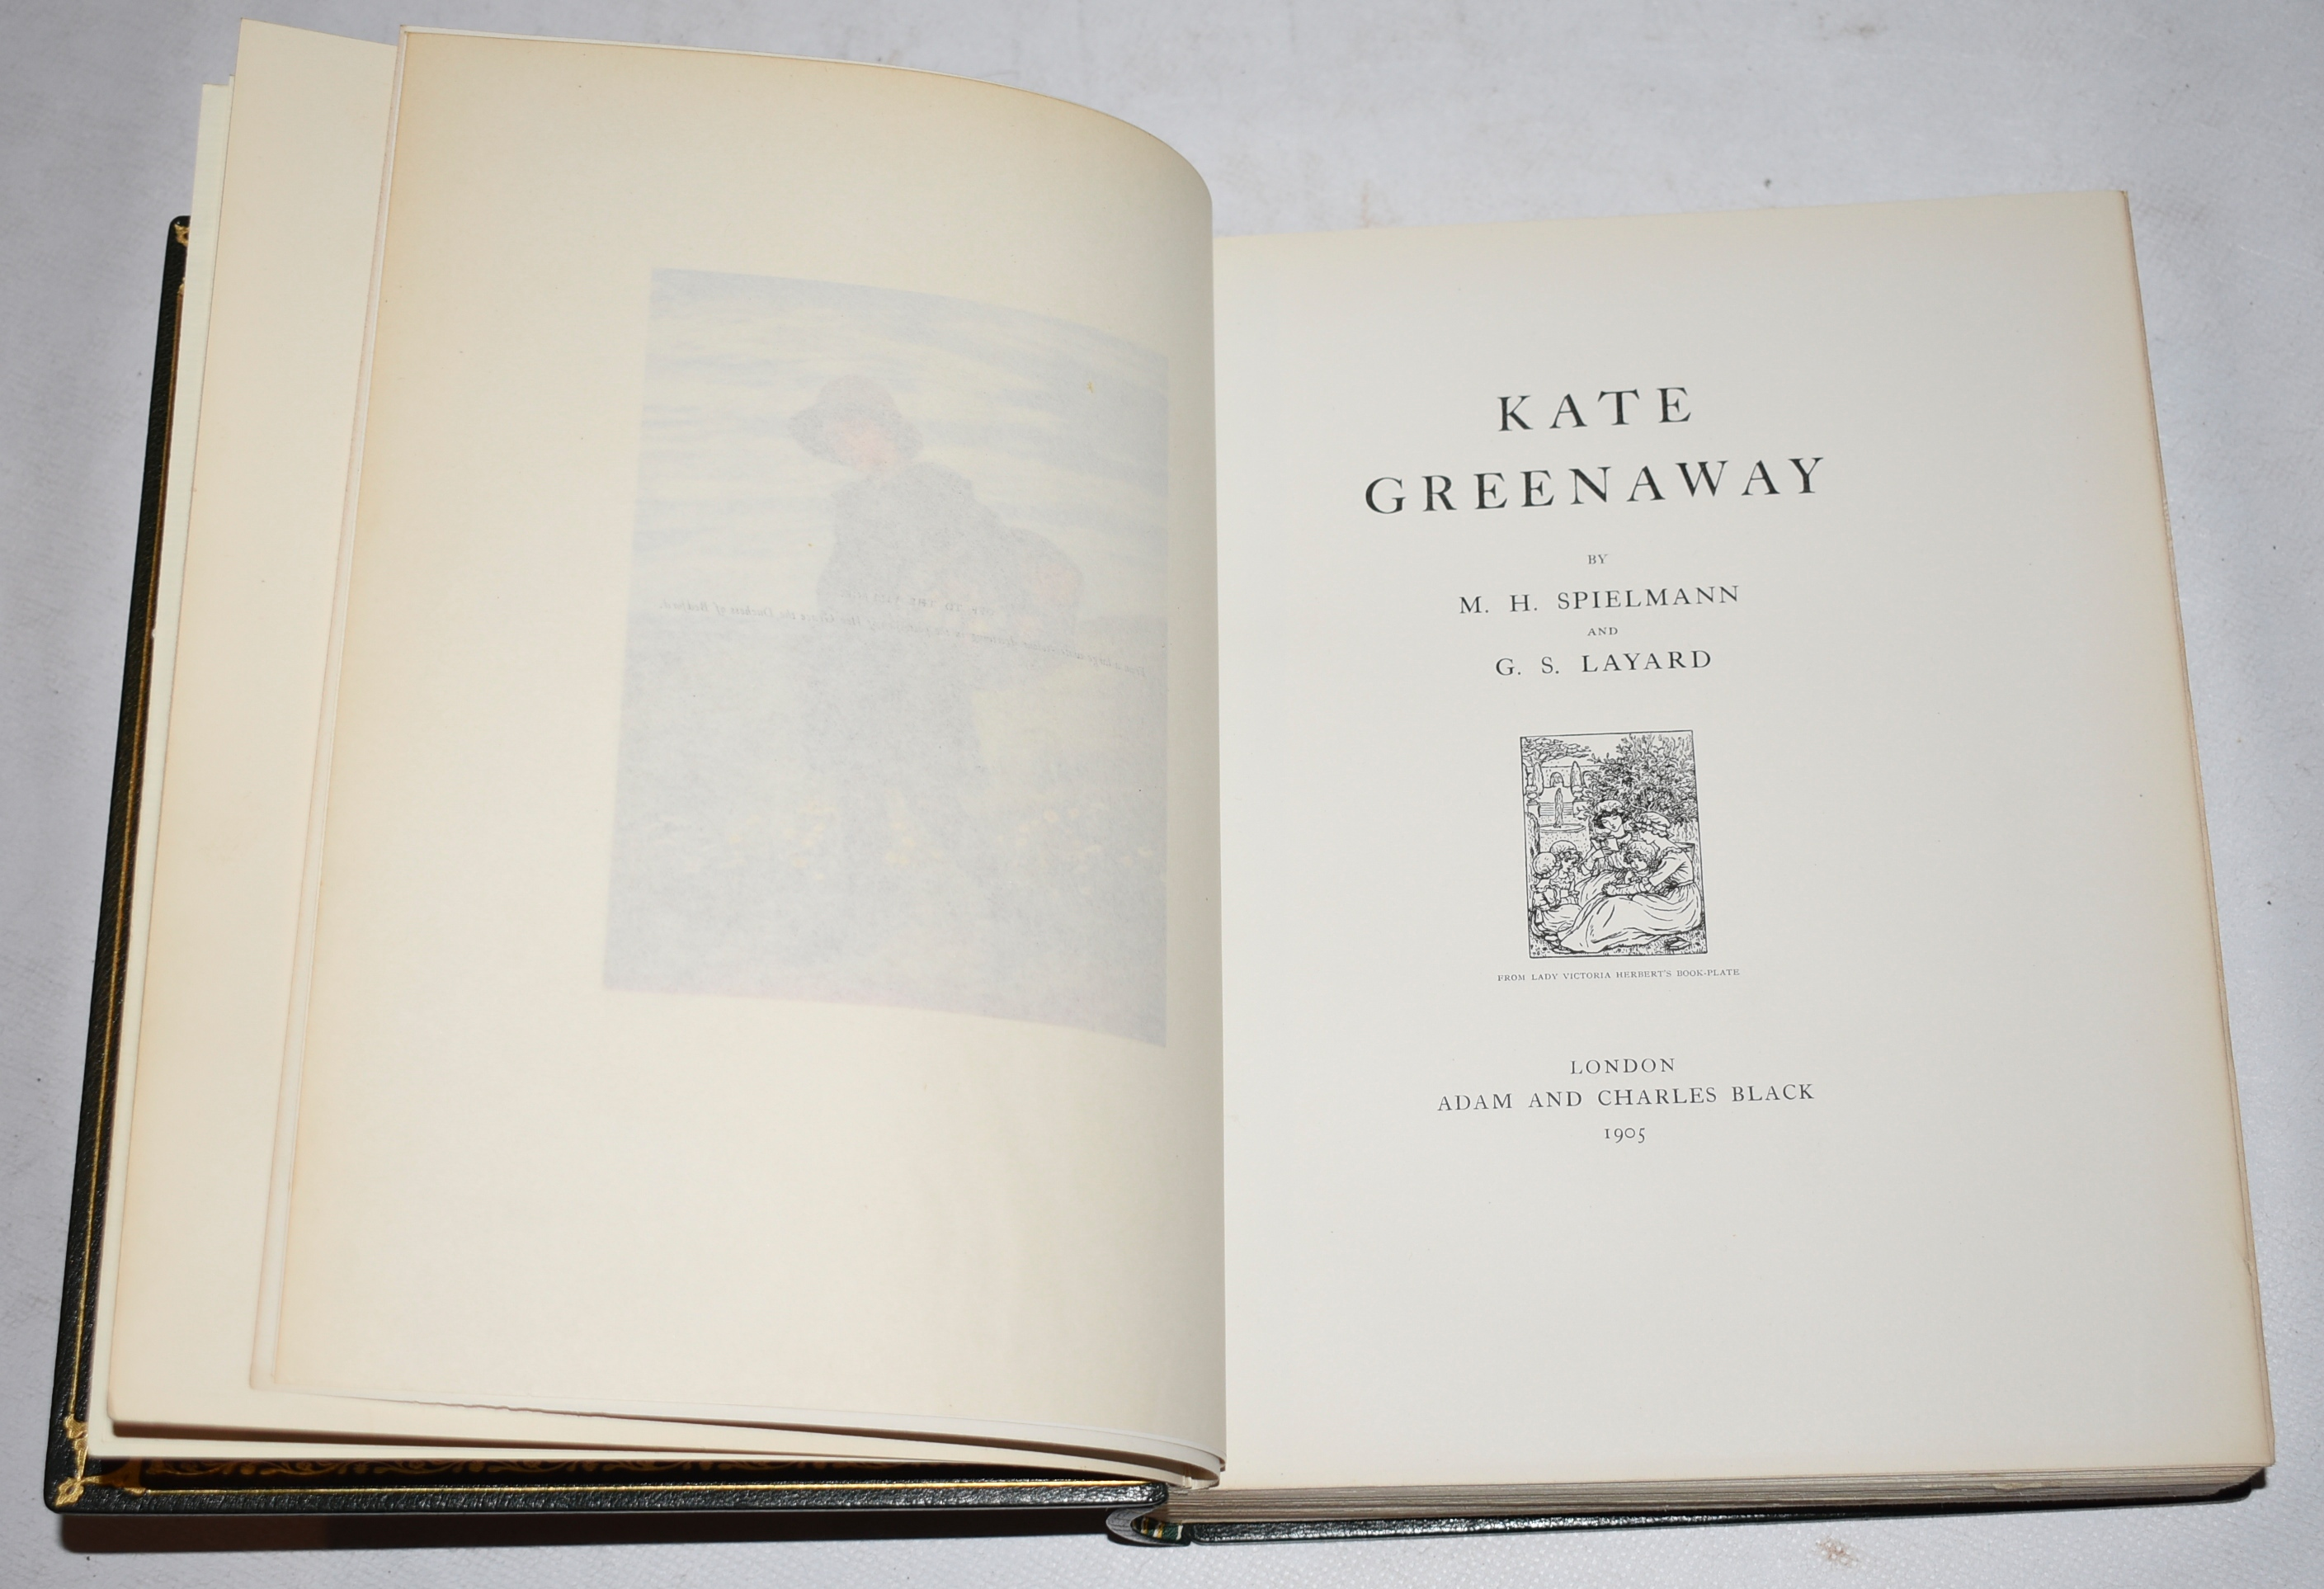 Image for Kate Greenaway. Signed Limited Deluxe Edition in Fine Leather Binding. With Original Artwork.